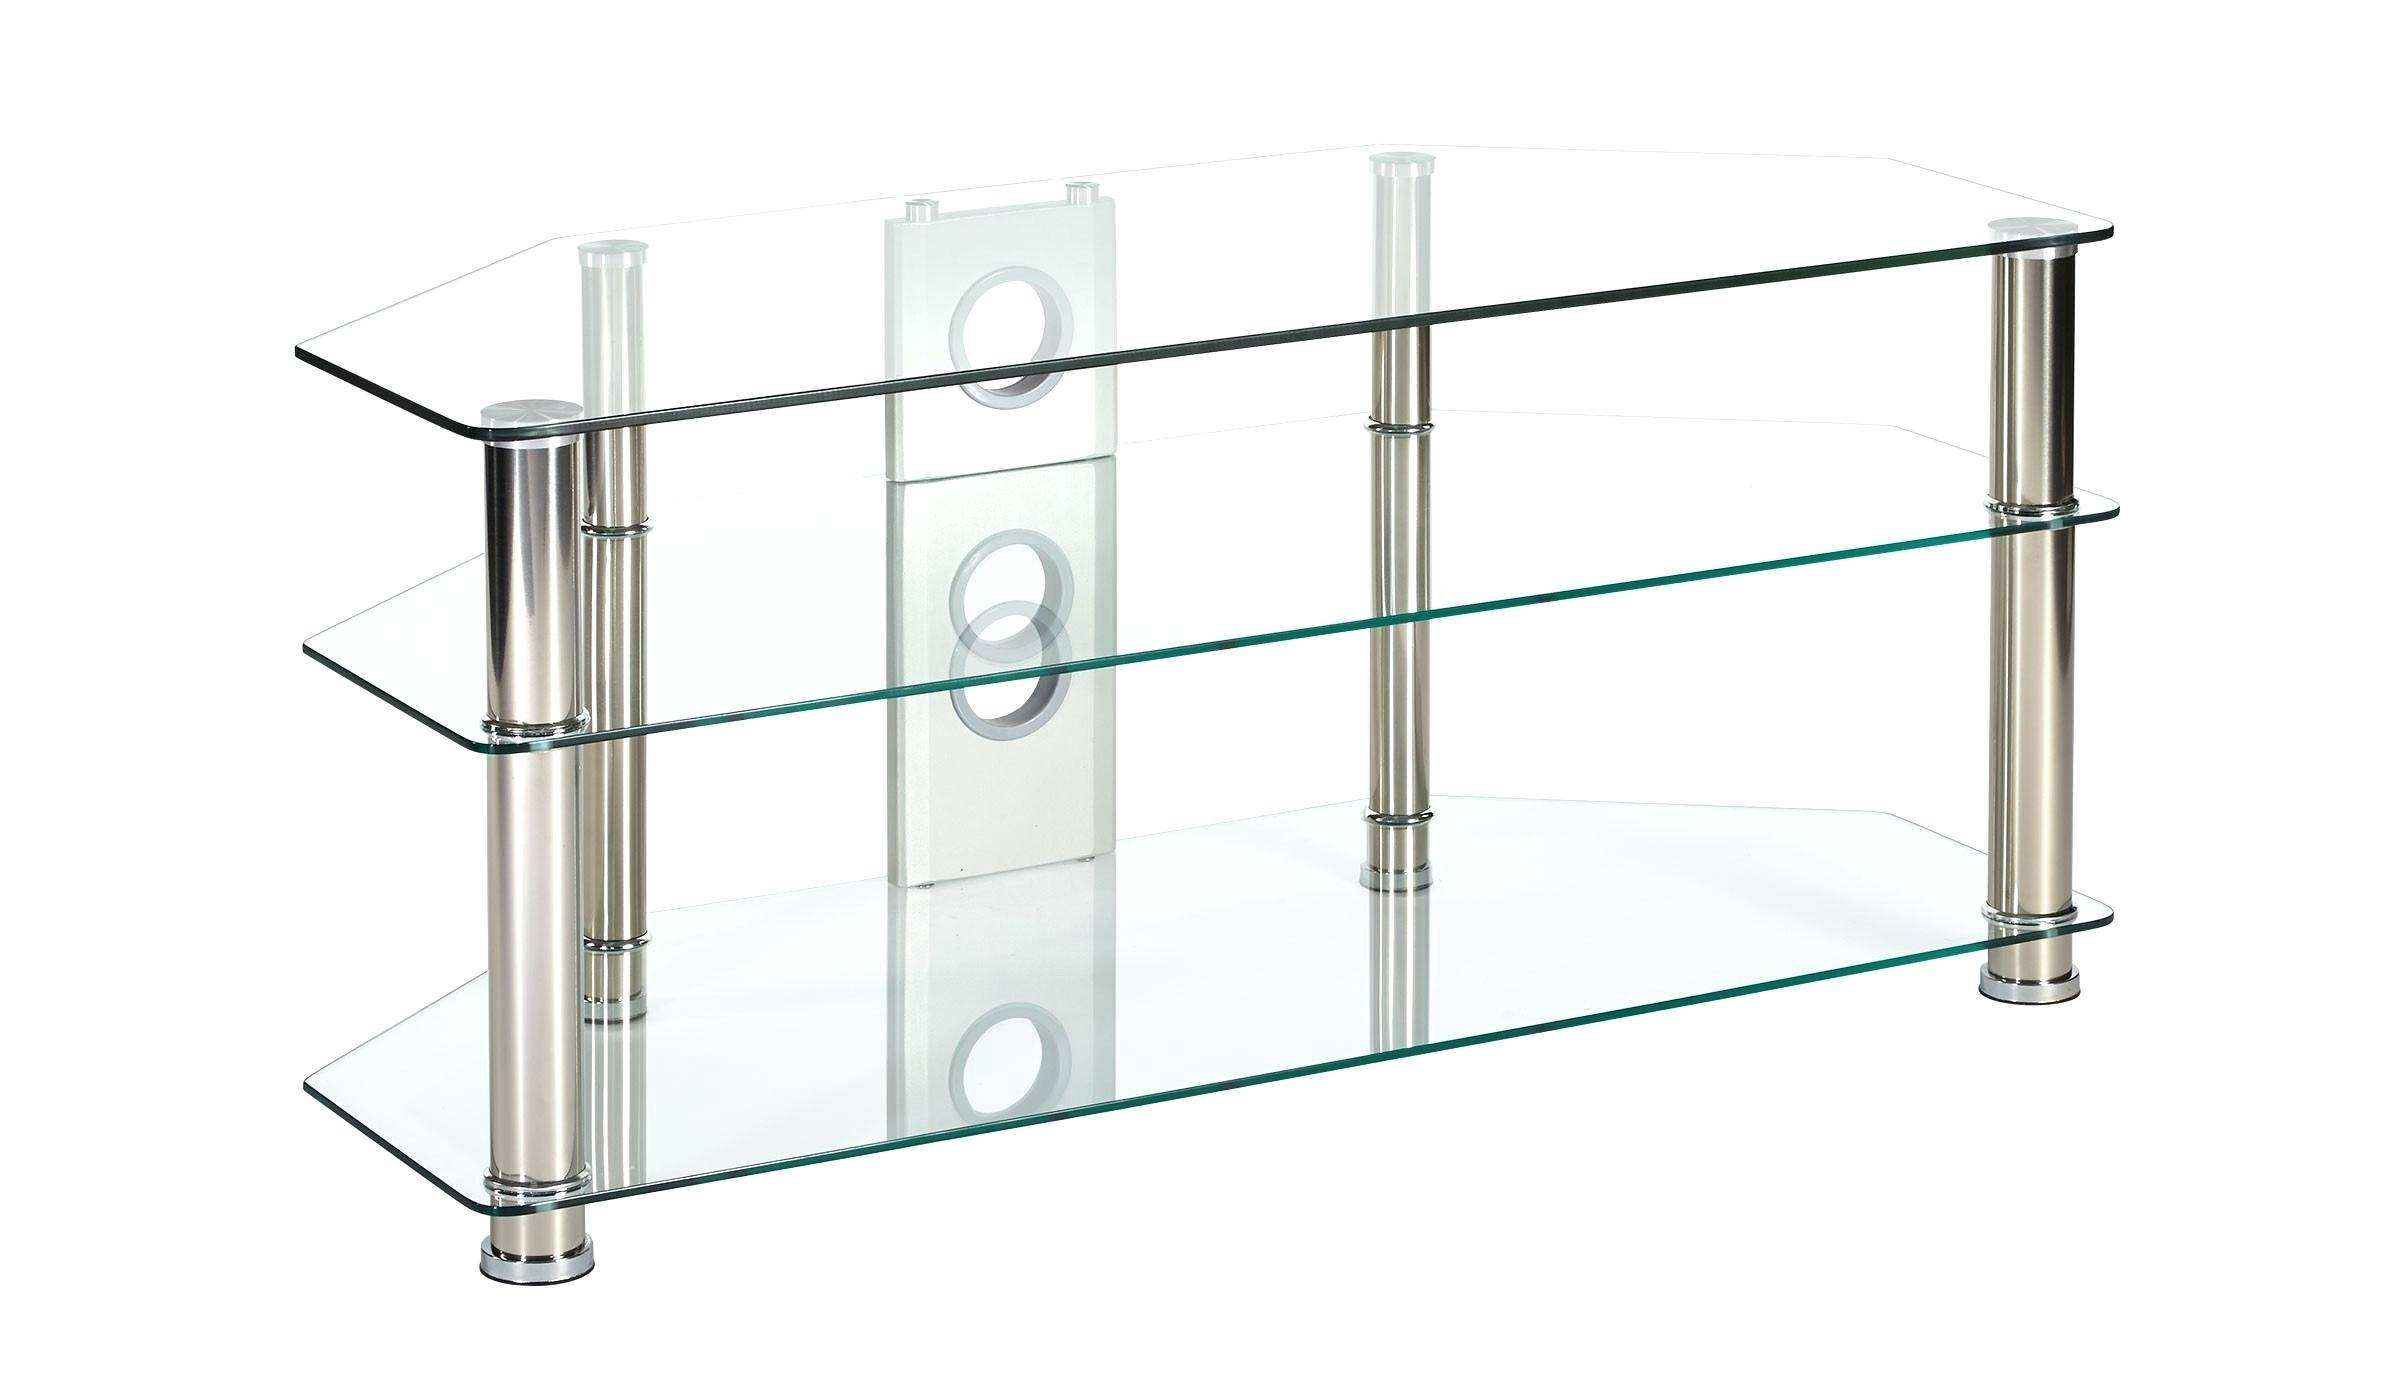 Tv Stand : Black And White Glass Tv Stand Compact Modern White inside Clear Glass Tv Stand (Image 13 of 15)